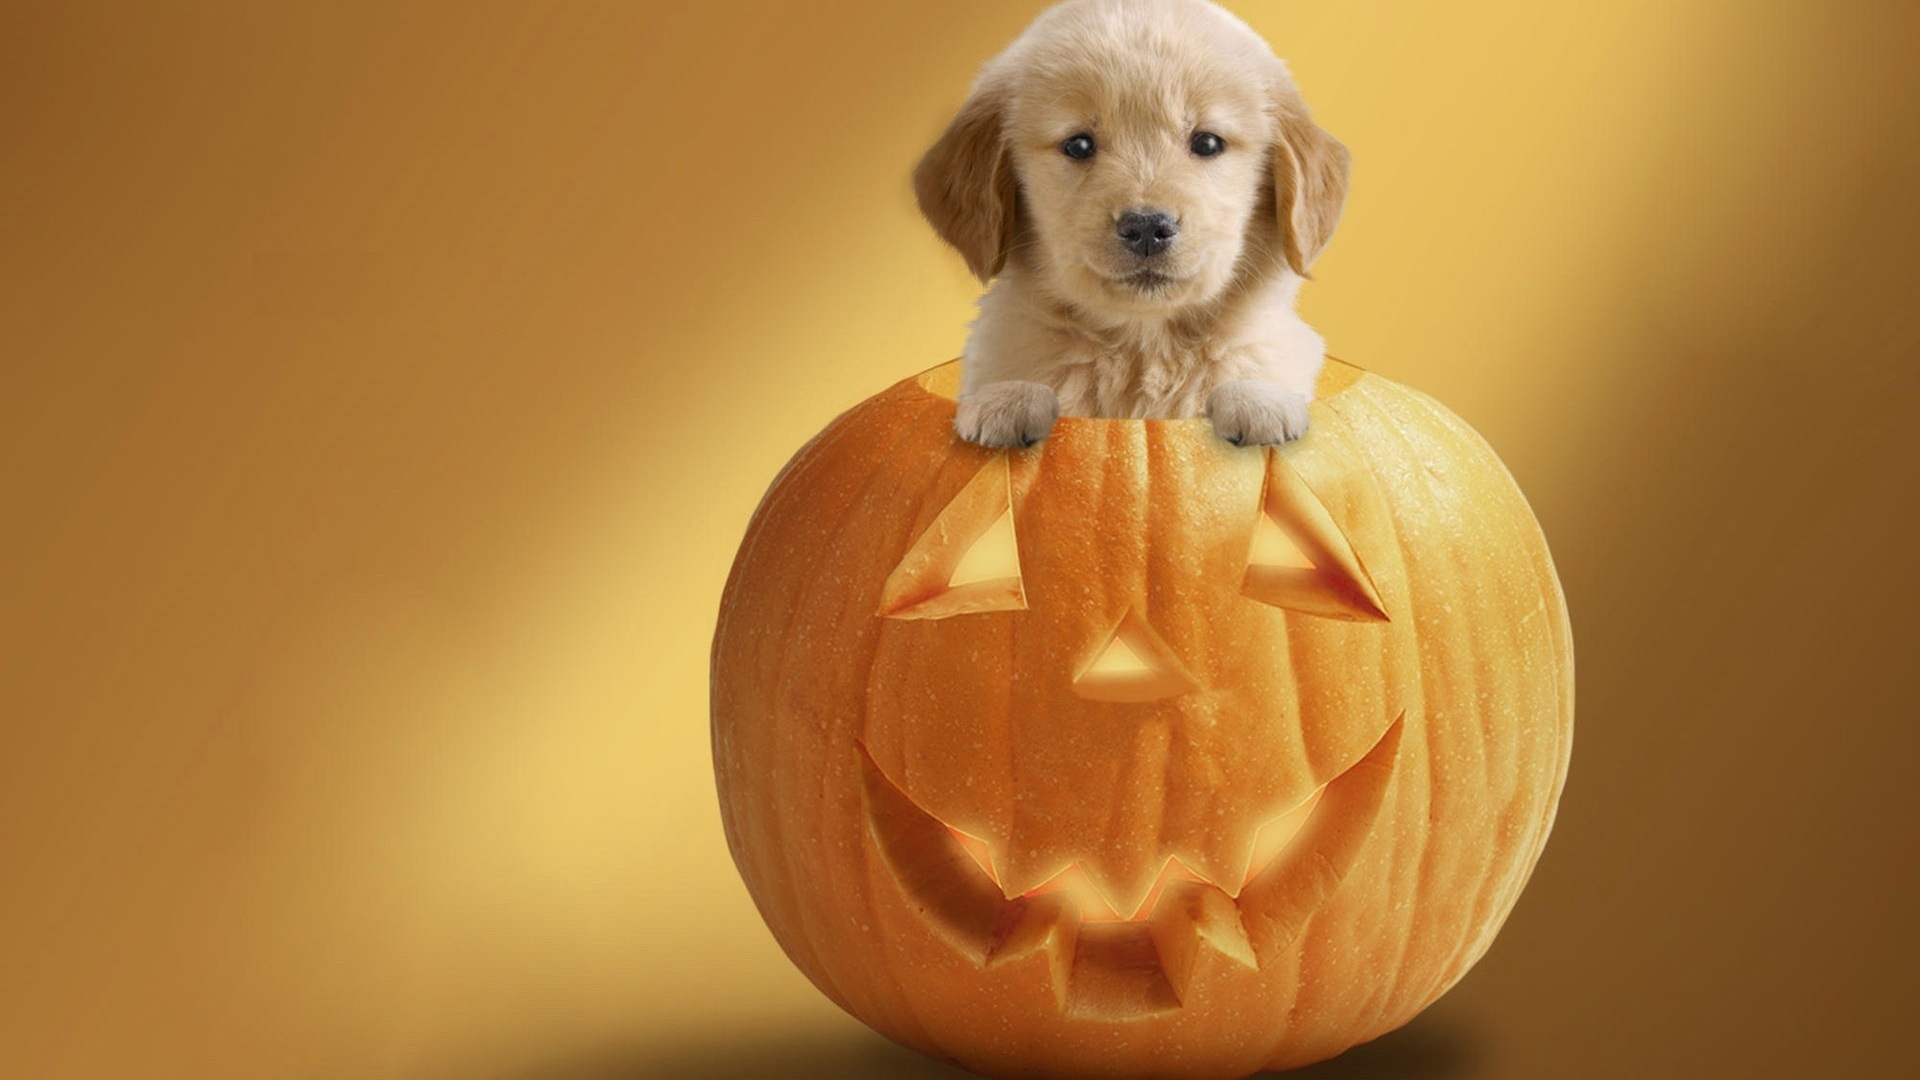 Halloween Wallpaper With Dogs4